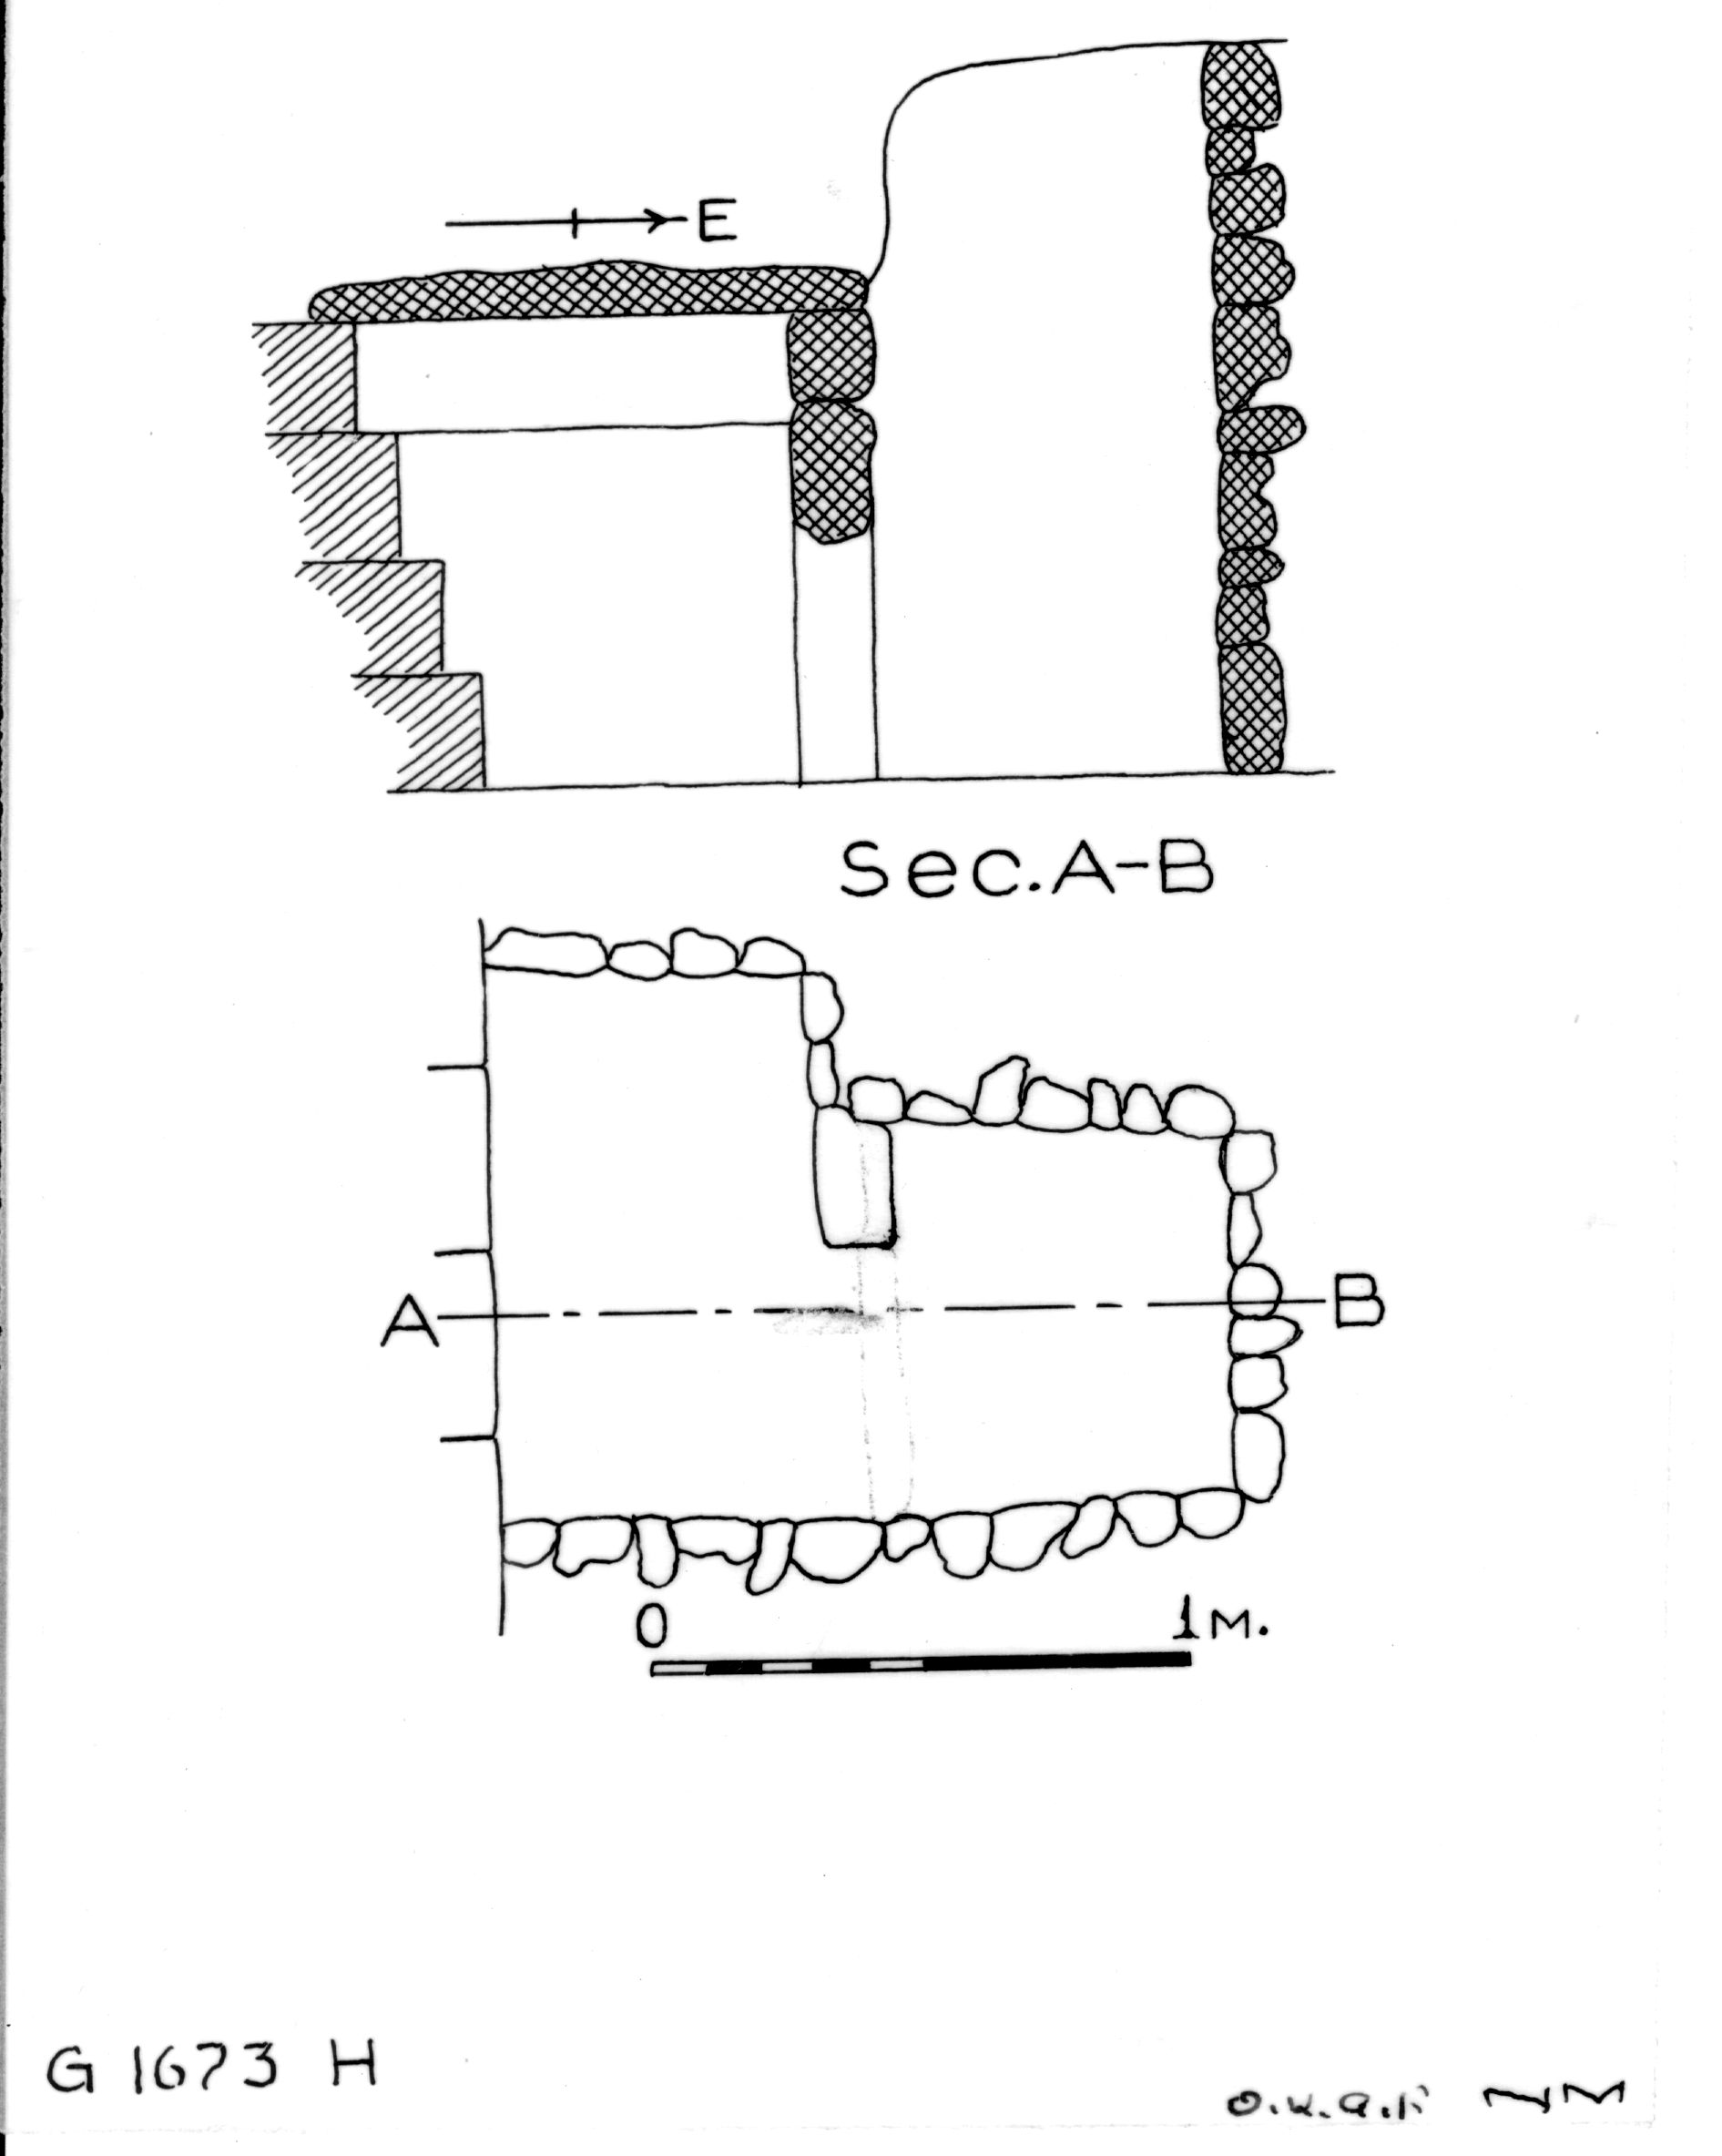 Maps and plans: G 1673, Shaft H